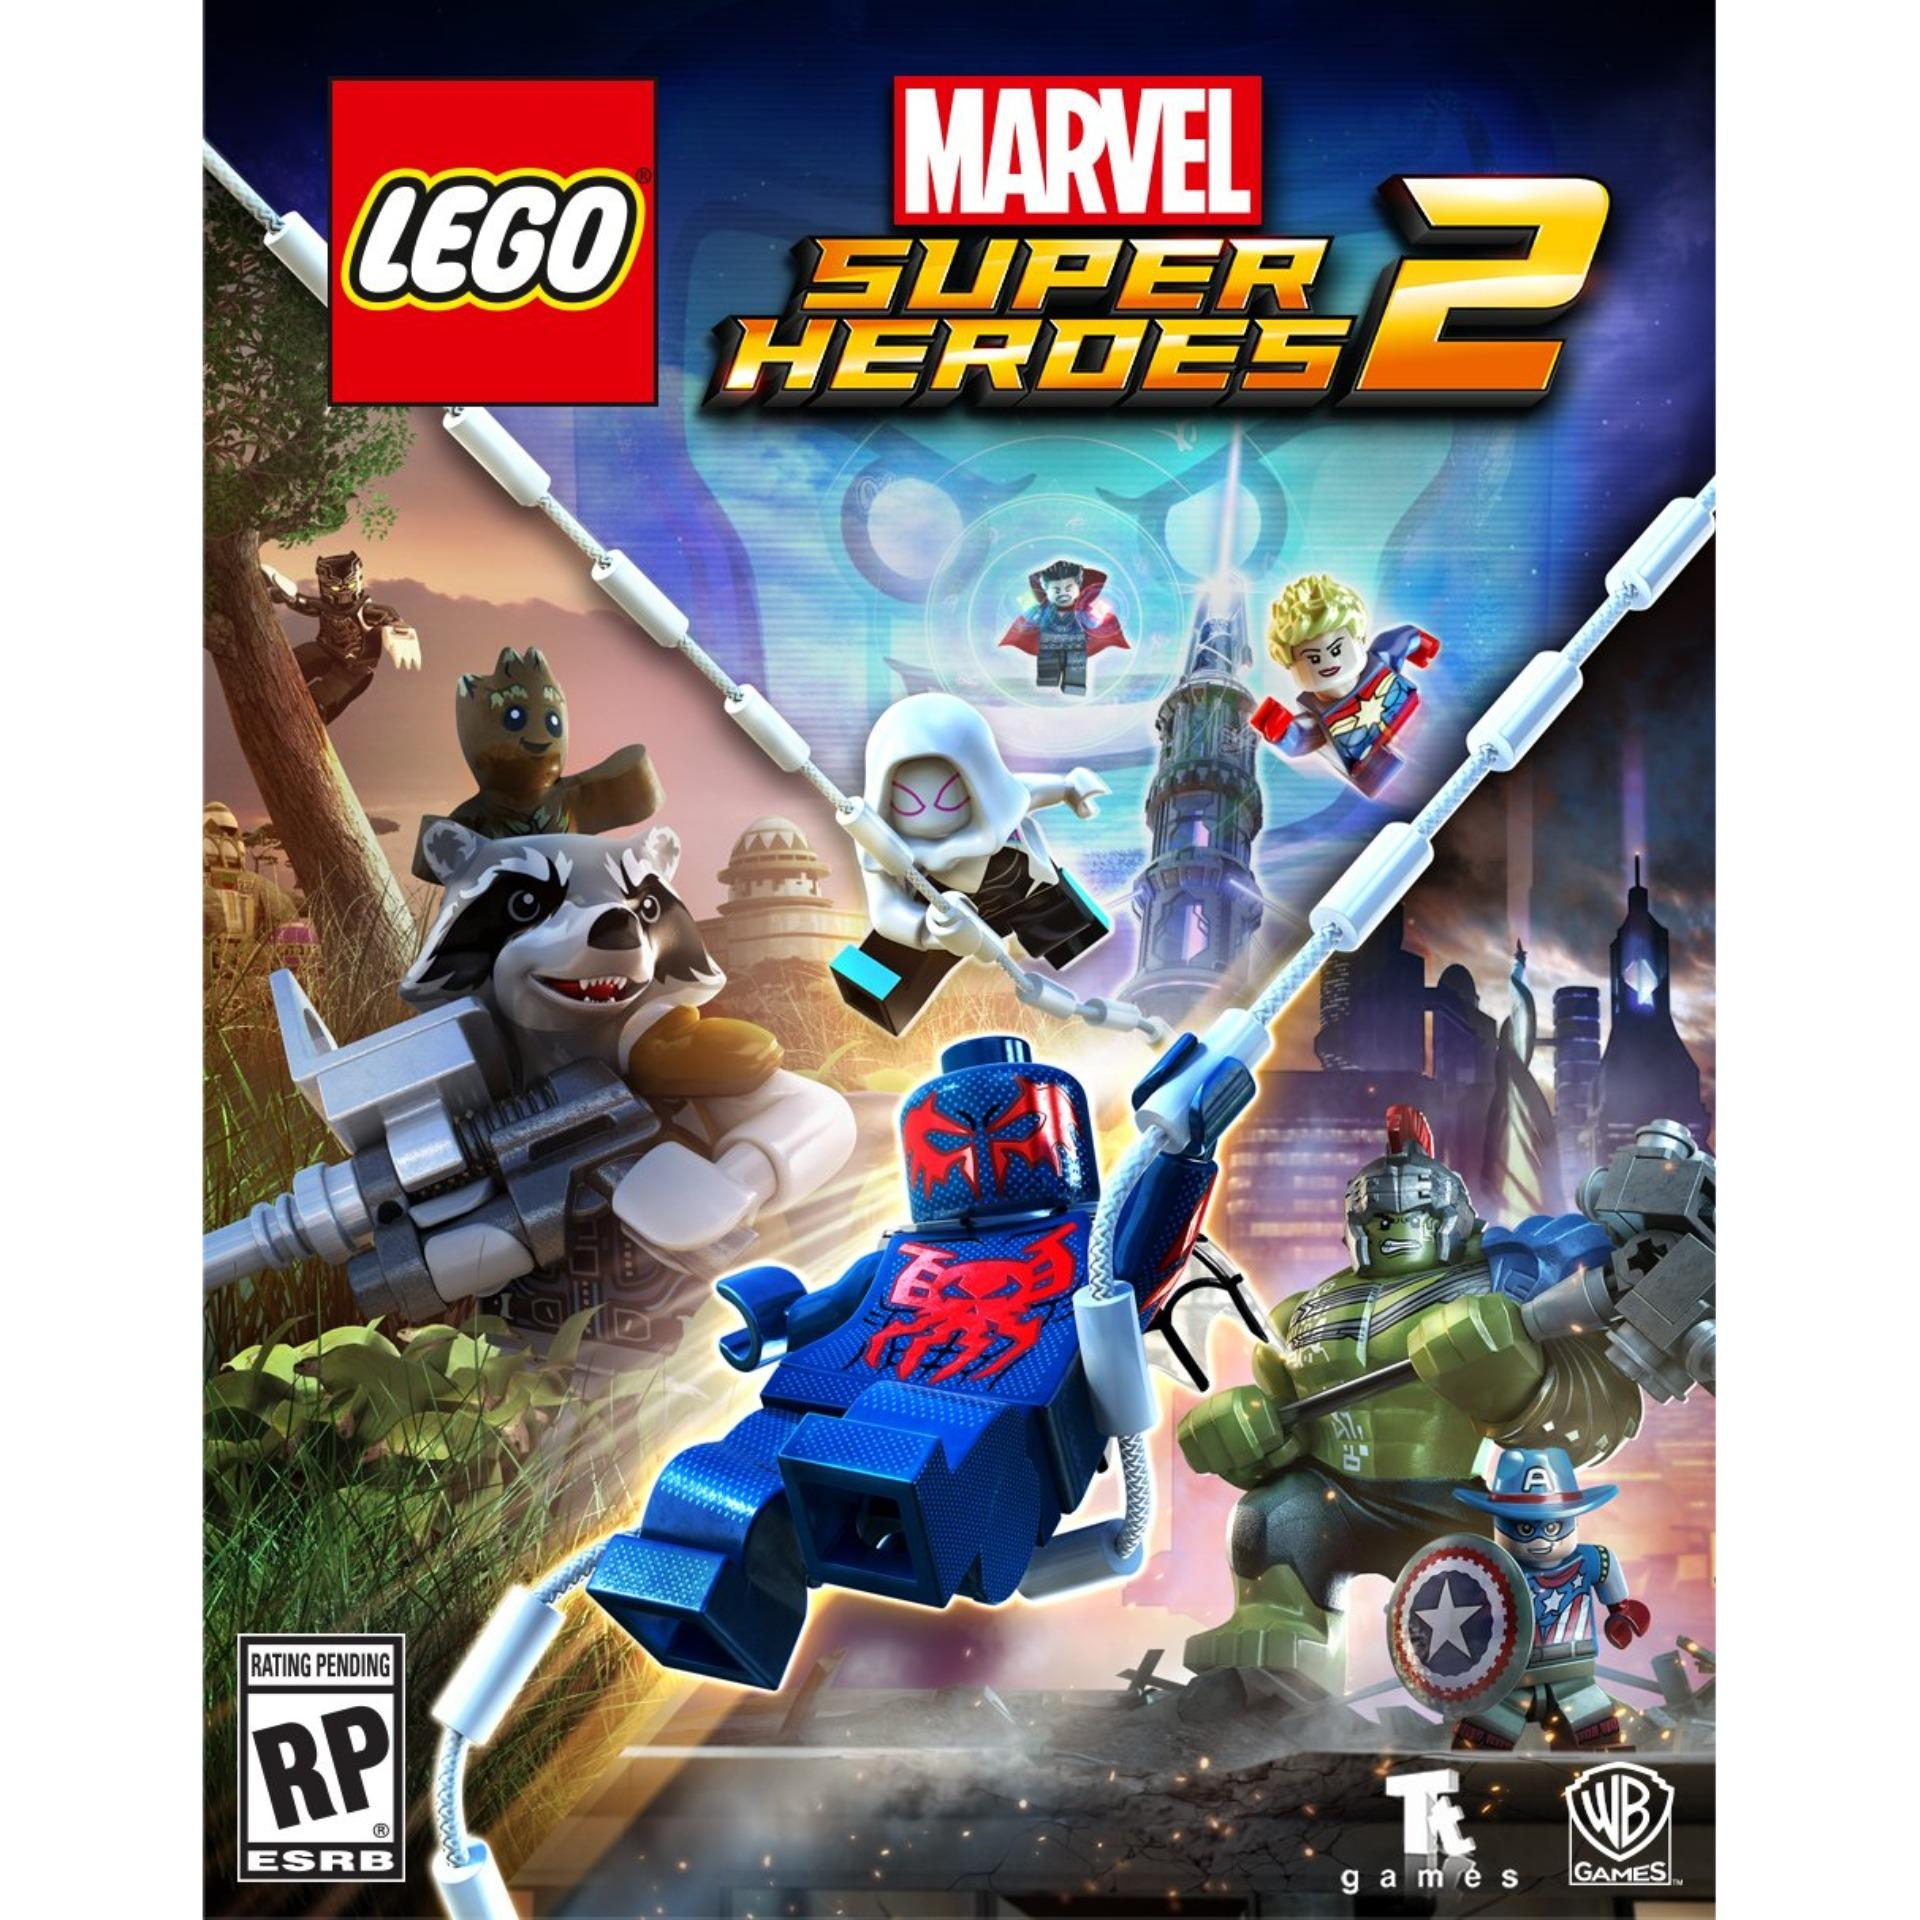 LEGO Marvel Super Heroes 2 Infinity War - Game PC